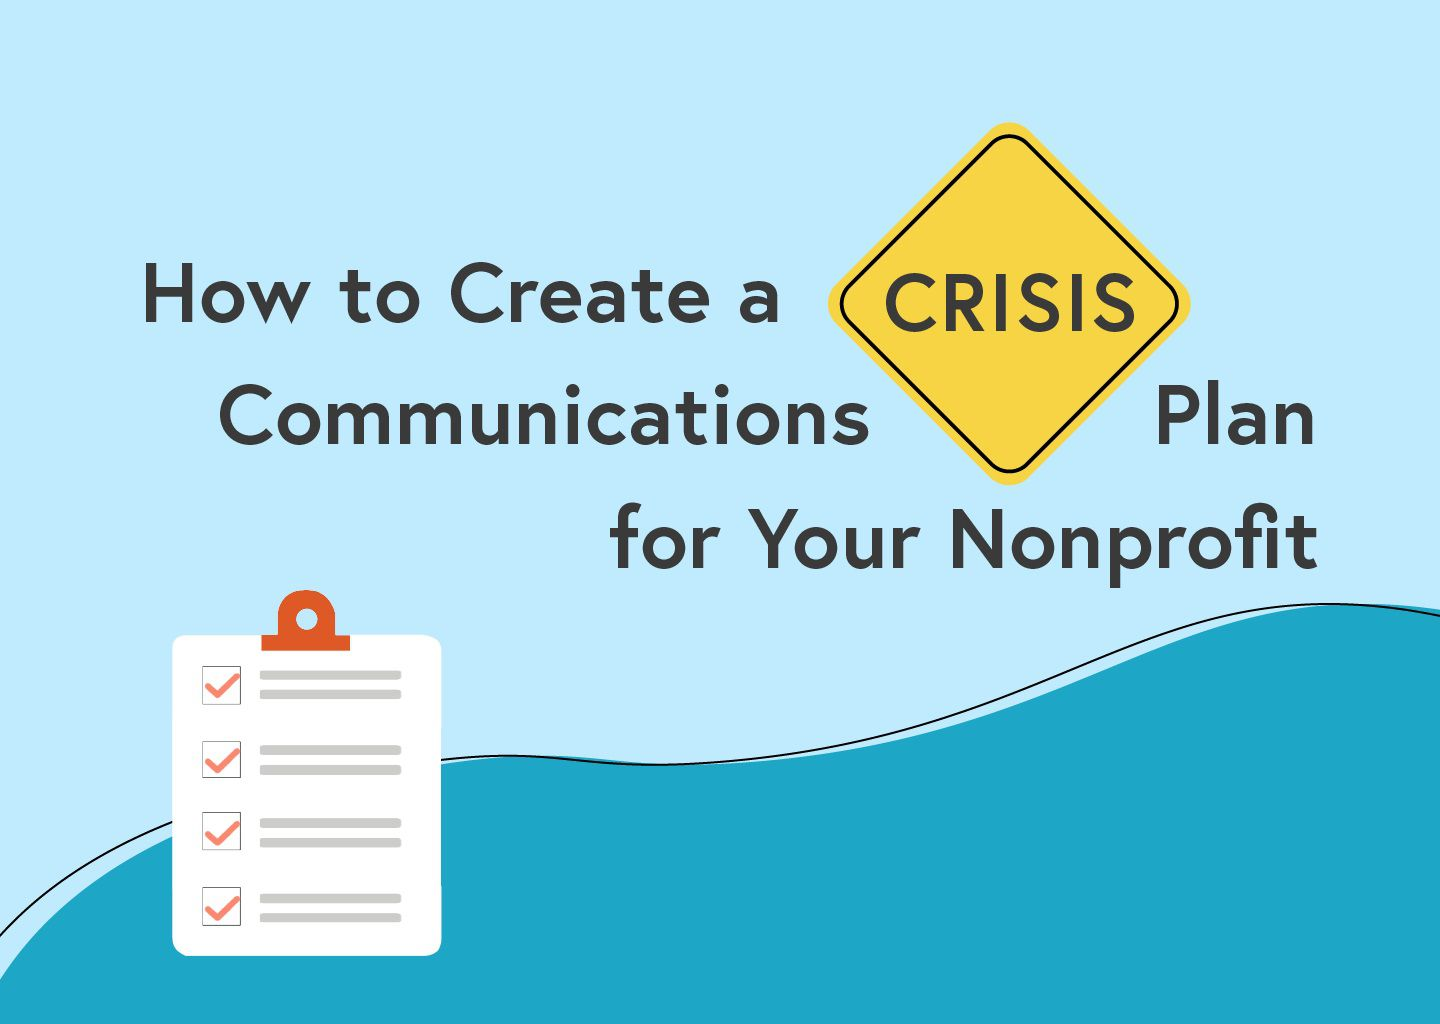 008 Fearsome Crisi Communication Plan Template Example  For Higher Education NonprofitFull